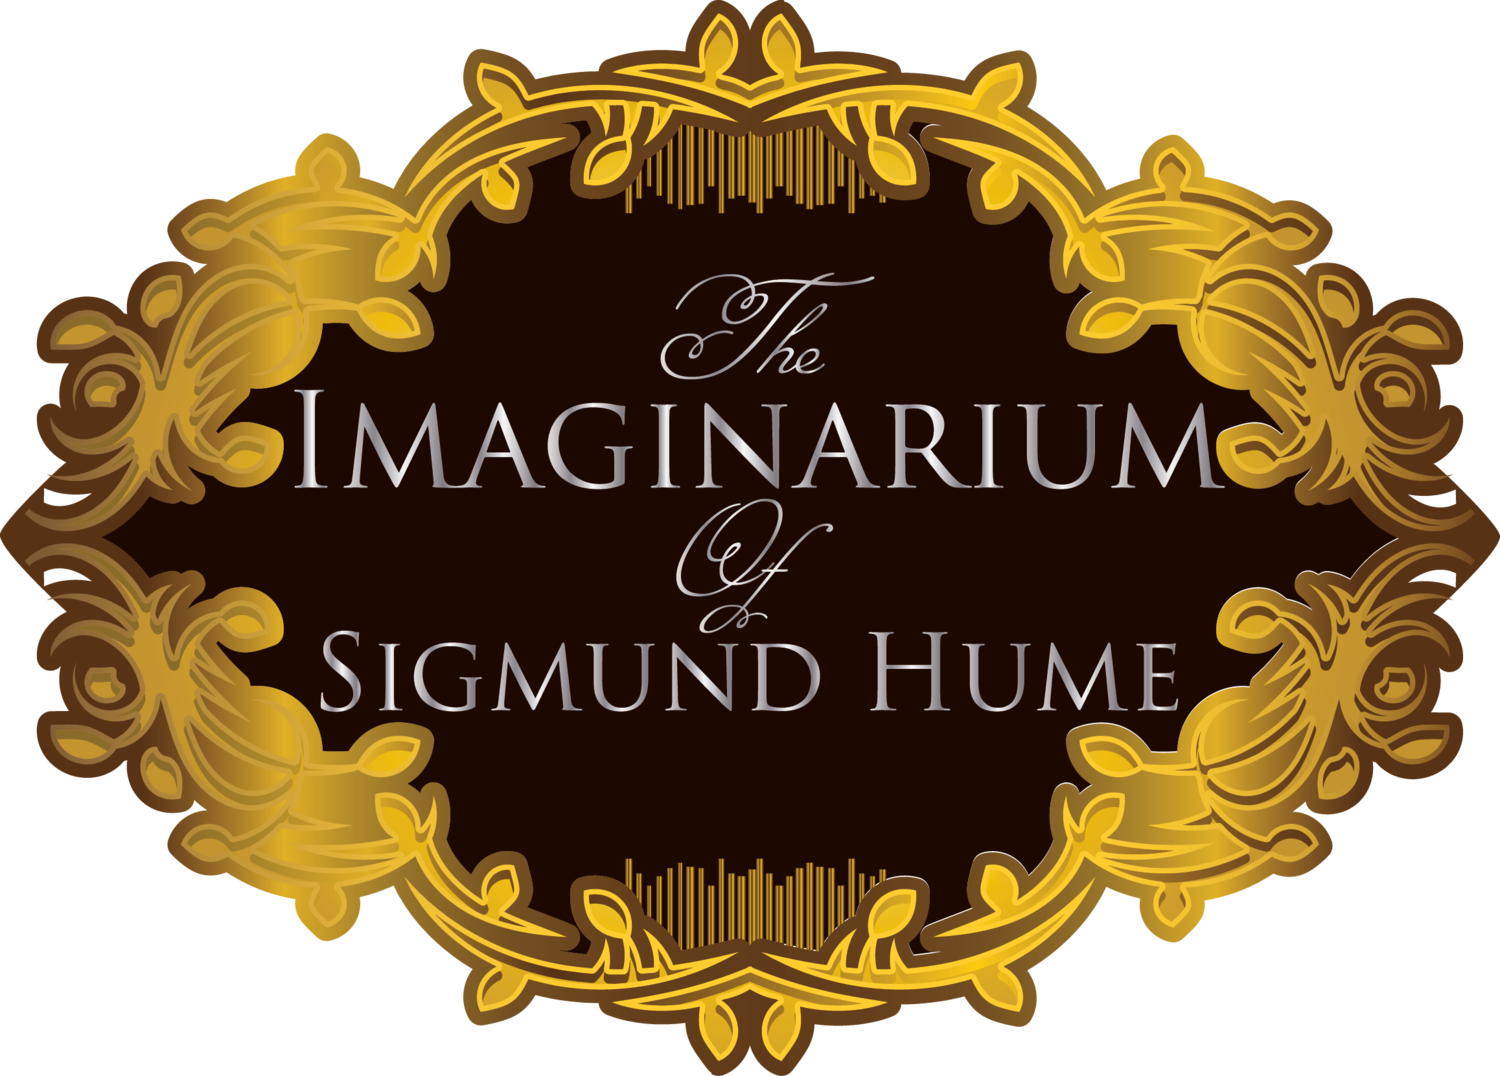 The Imaginarium of Sigmund Hume